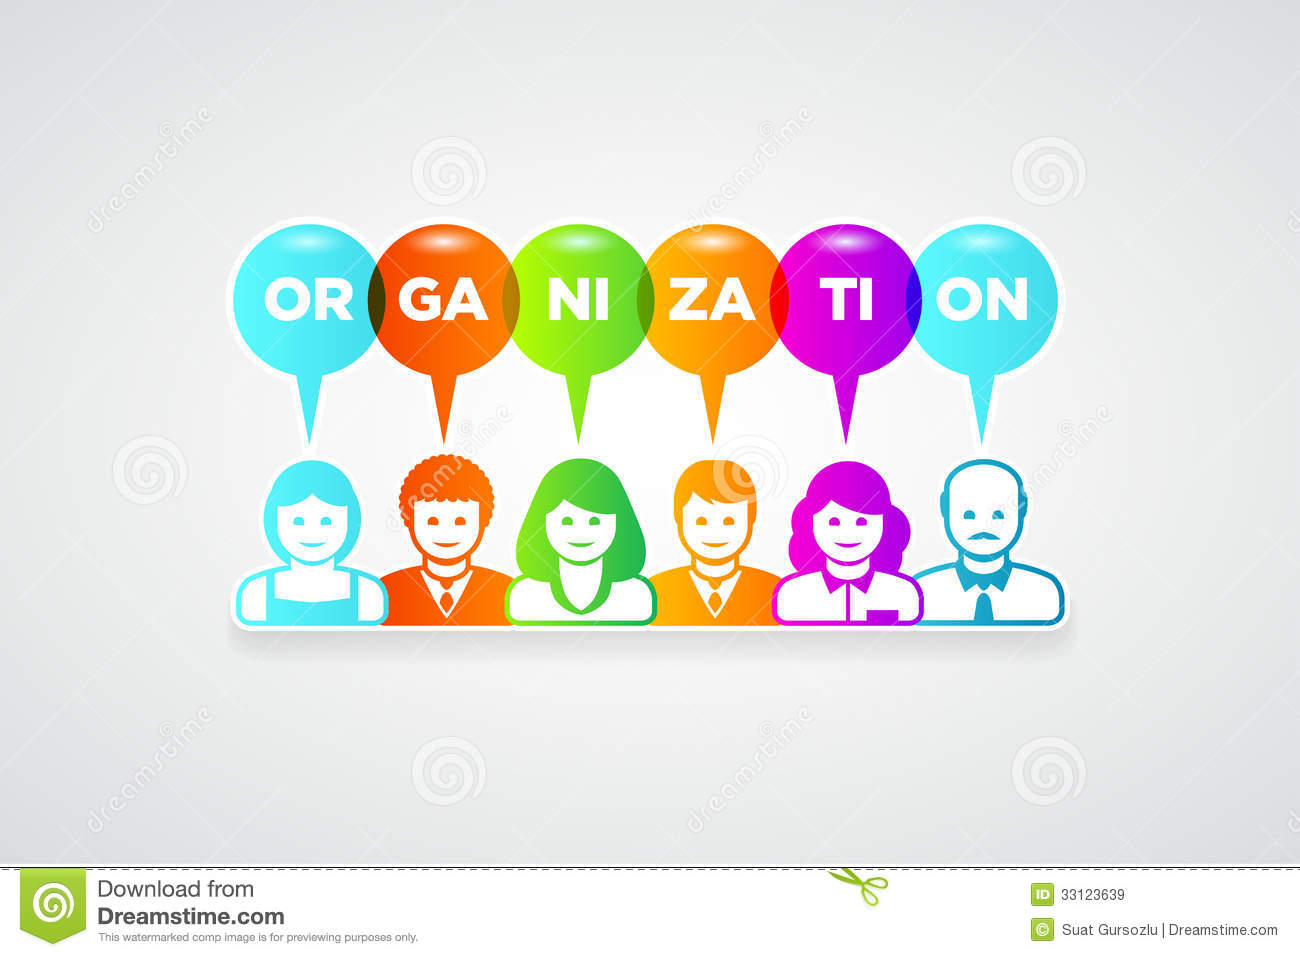 Organization Concept Royalty Free Stock Images - Image: 33123639